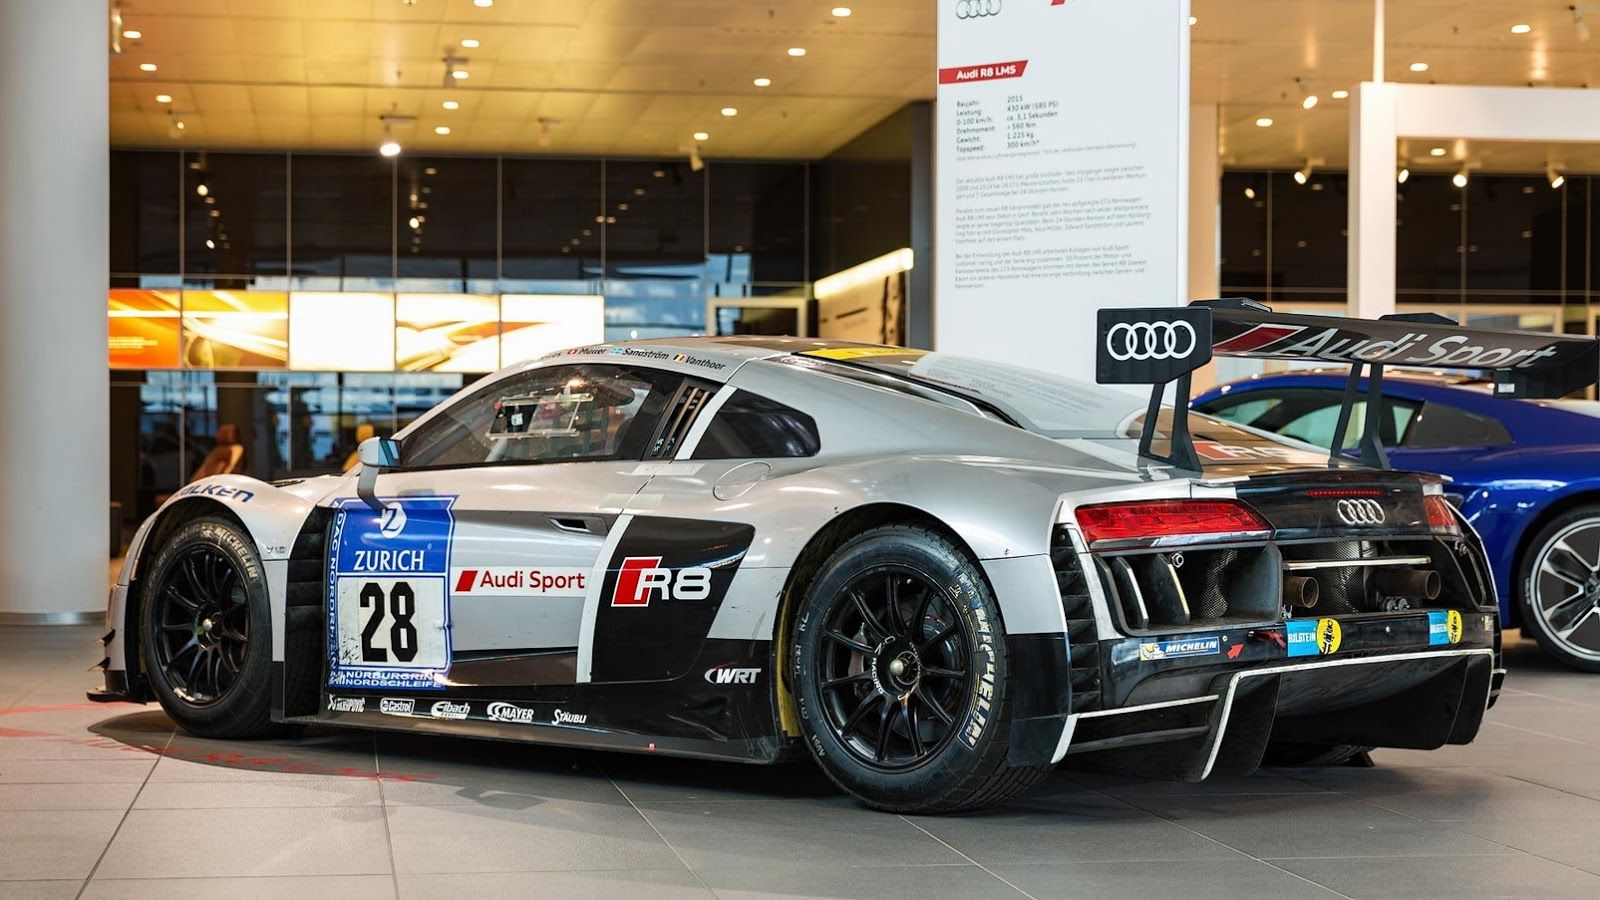 Audi R8 Lms Gt3 Brings Thunder To Showroom Floor Audi Audi R8